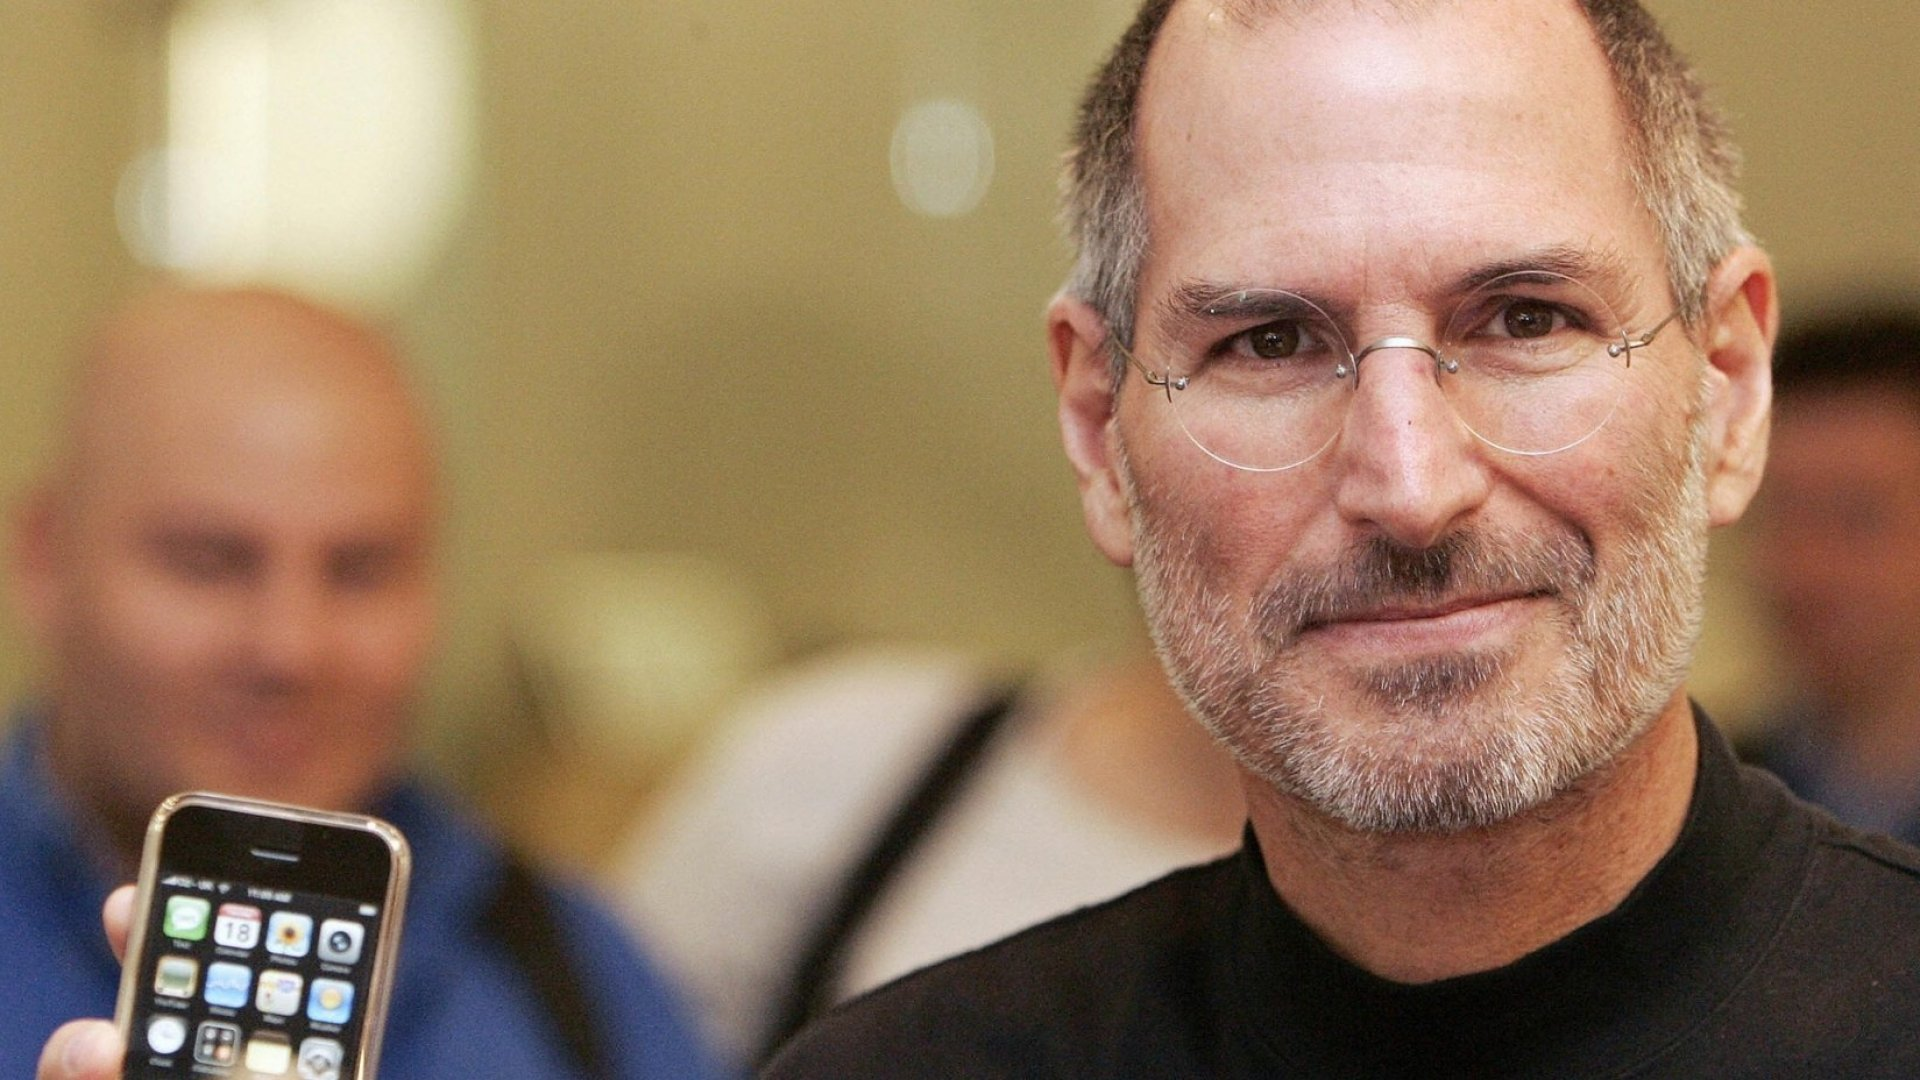 Steve Jobs Was Wrong About His Famous 'Smart Person' Quote. He Forgot About Millennials